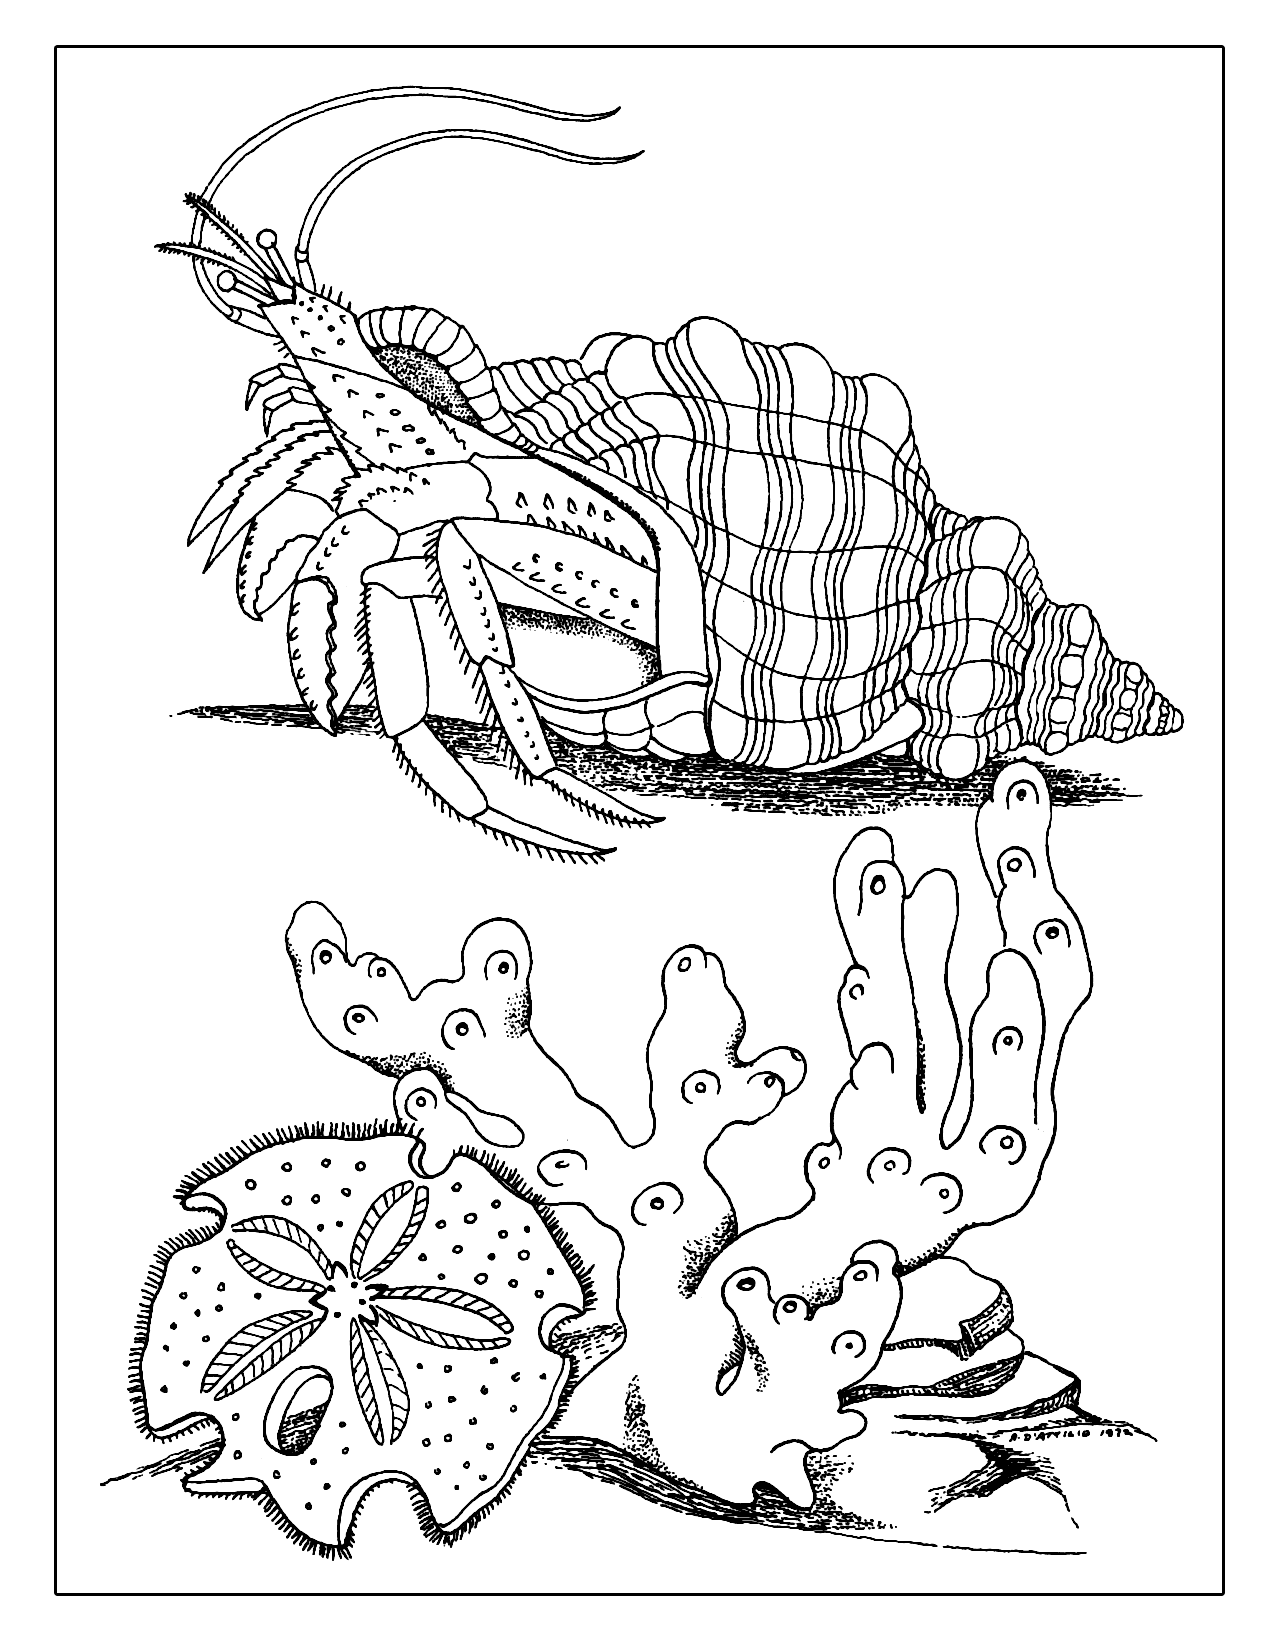 Crab In Its Shell Coloring Page